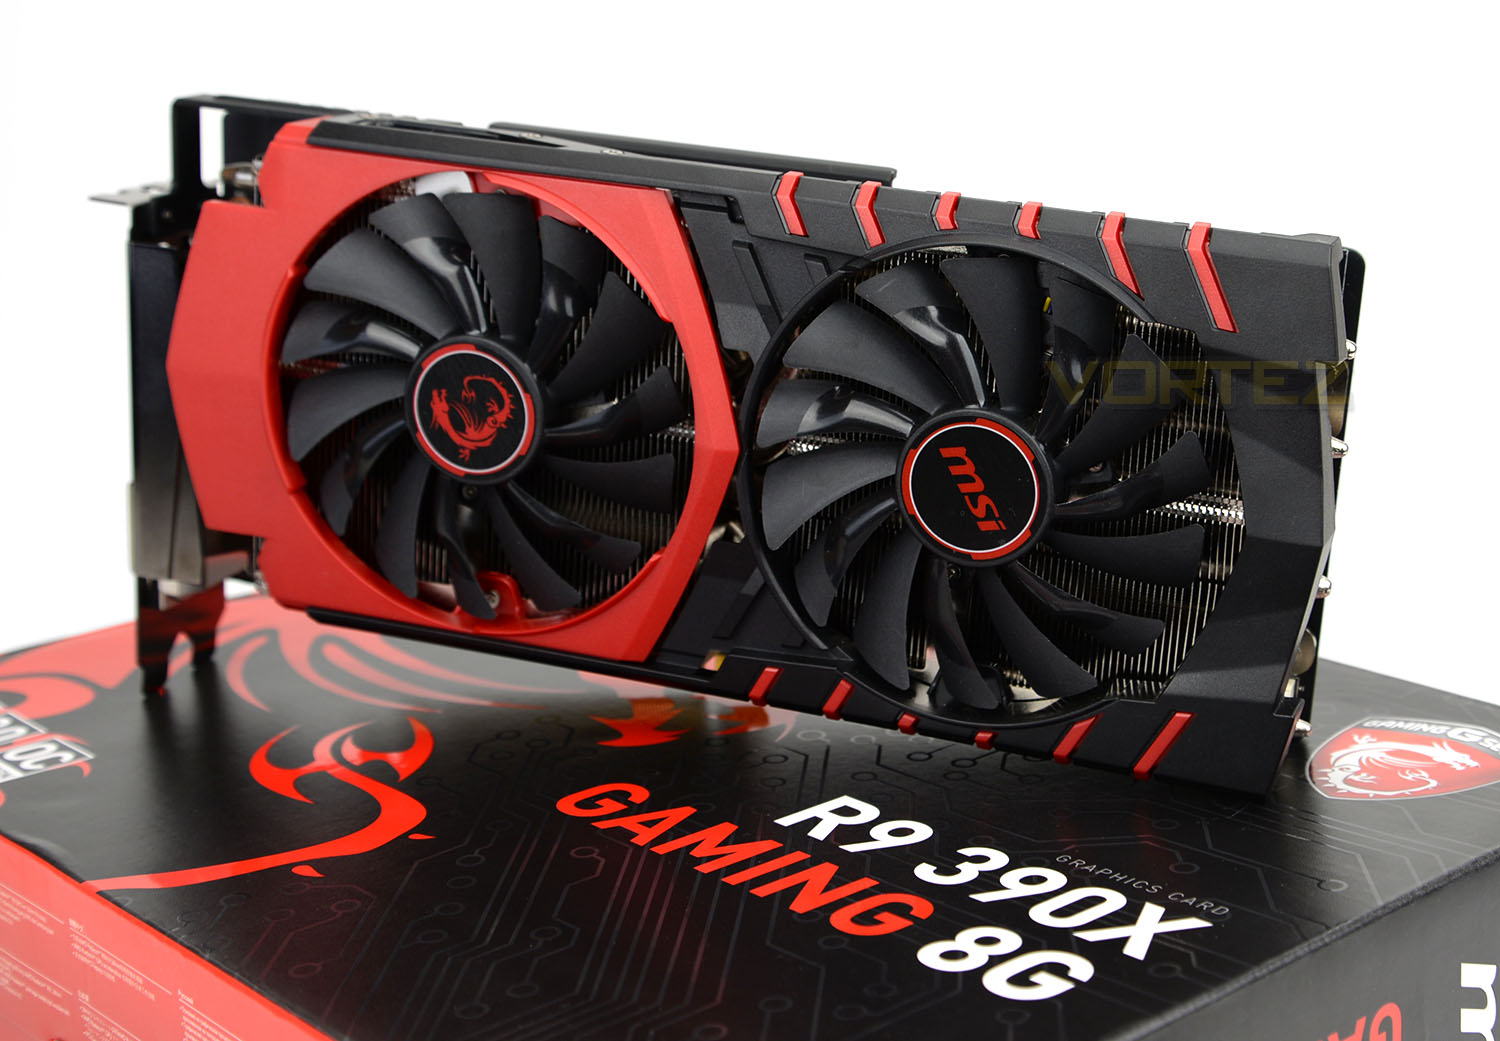 Install msi r9 390 graphics card | How to change hp h8 1534